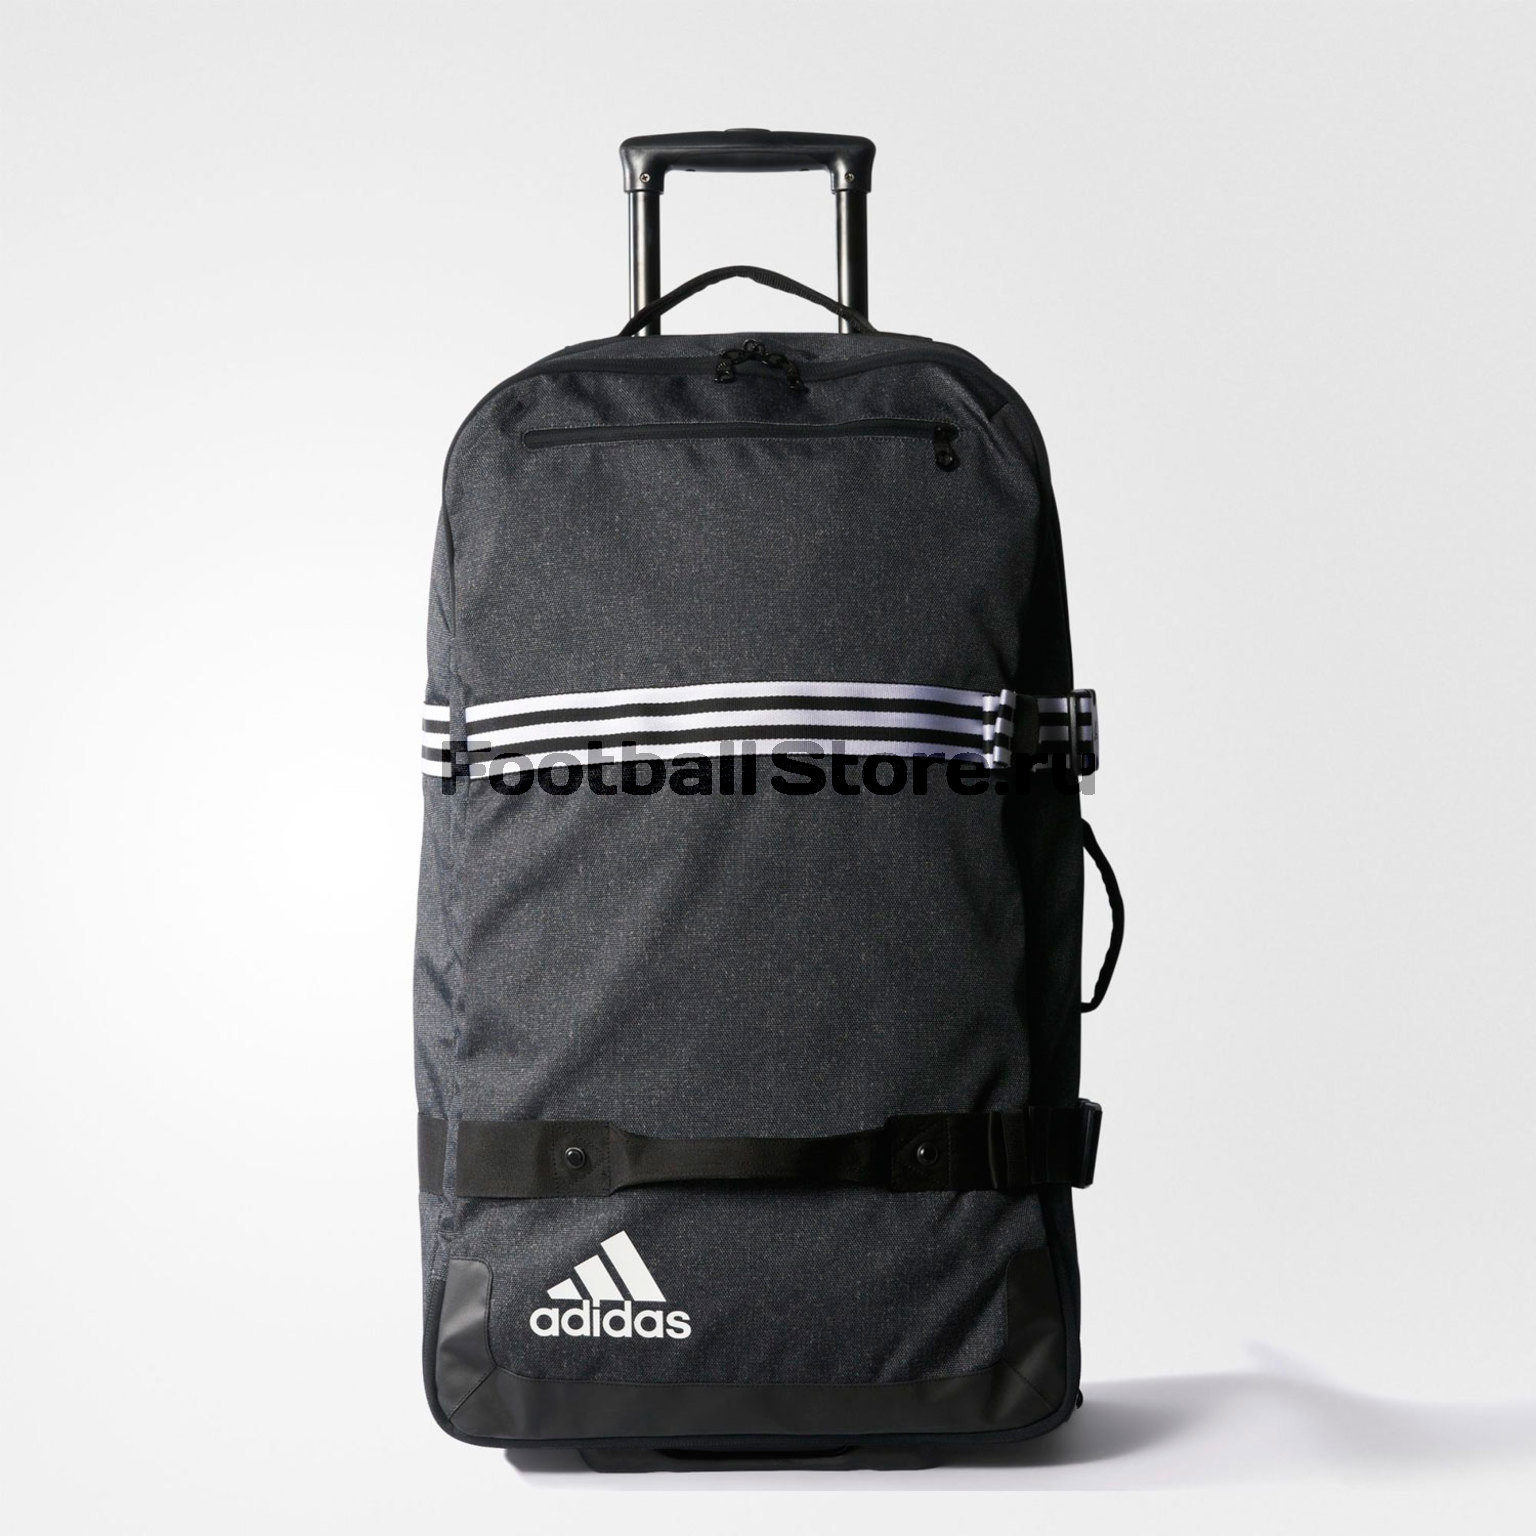 Сумка-чемодан на колесиках Adidas T. Trolley XL AI3821